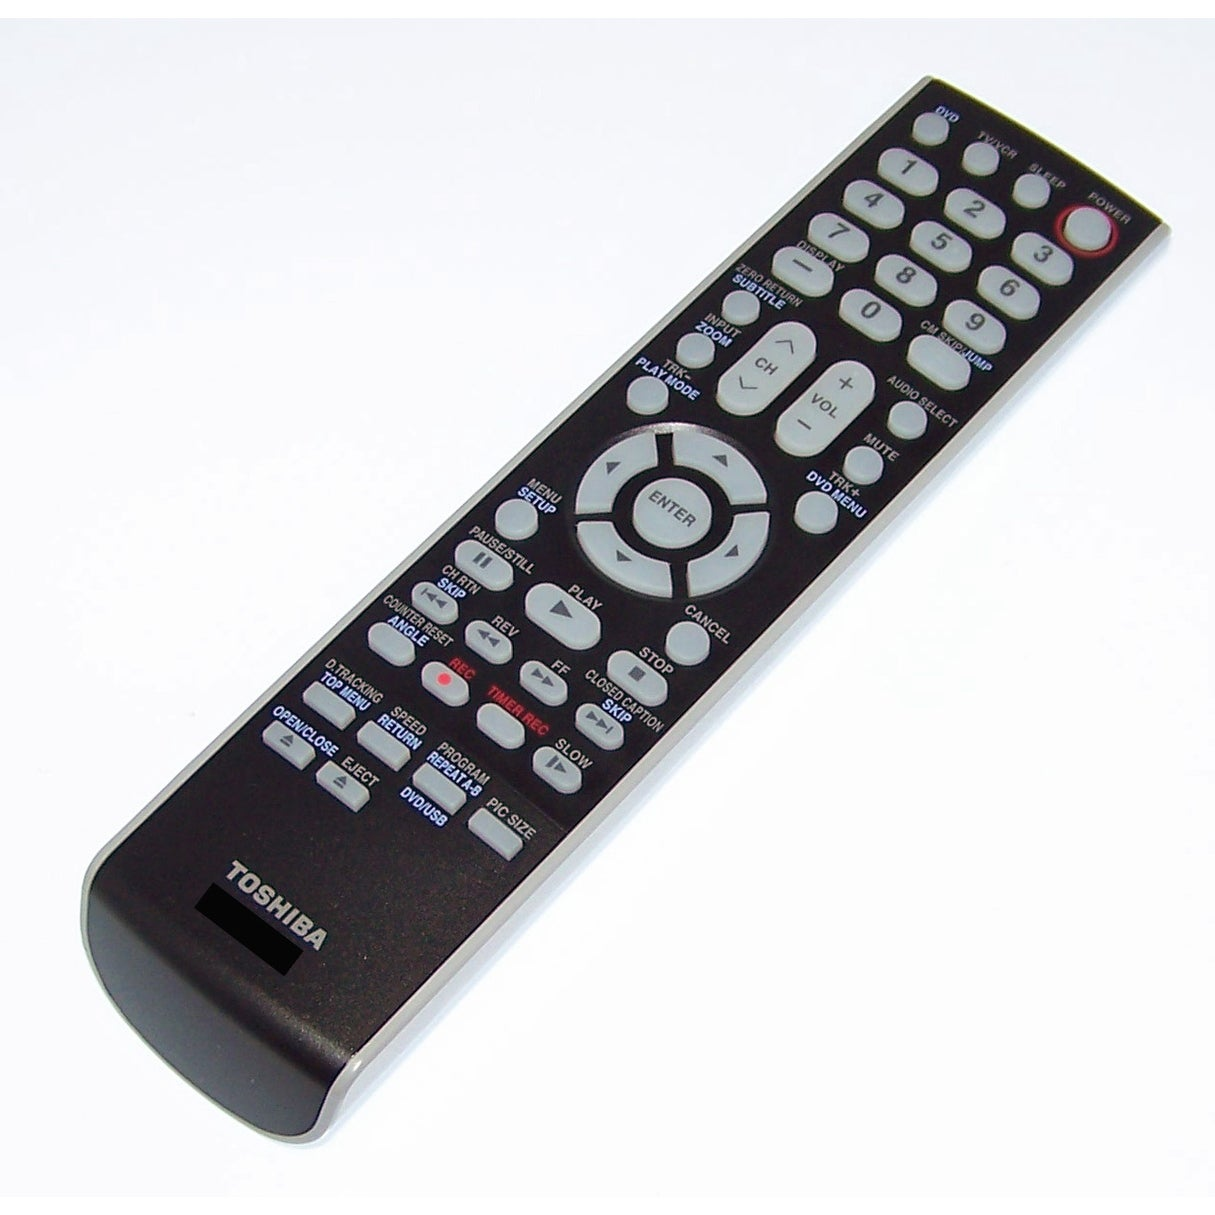 OEM Toshiba Remote Control Shipped With MW26H82/TV, MW26H82, MW27H62,  MW27H62/TV